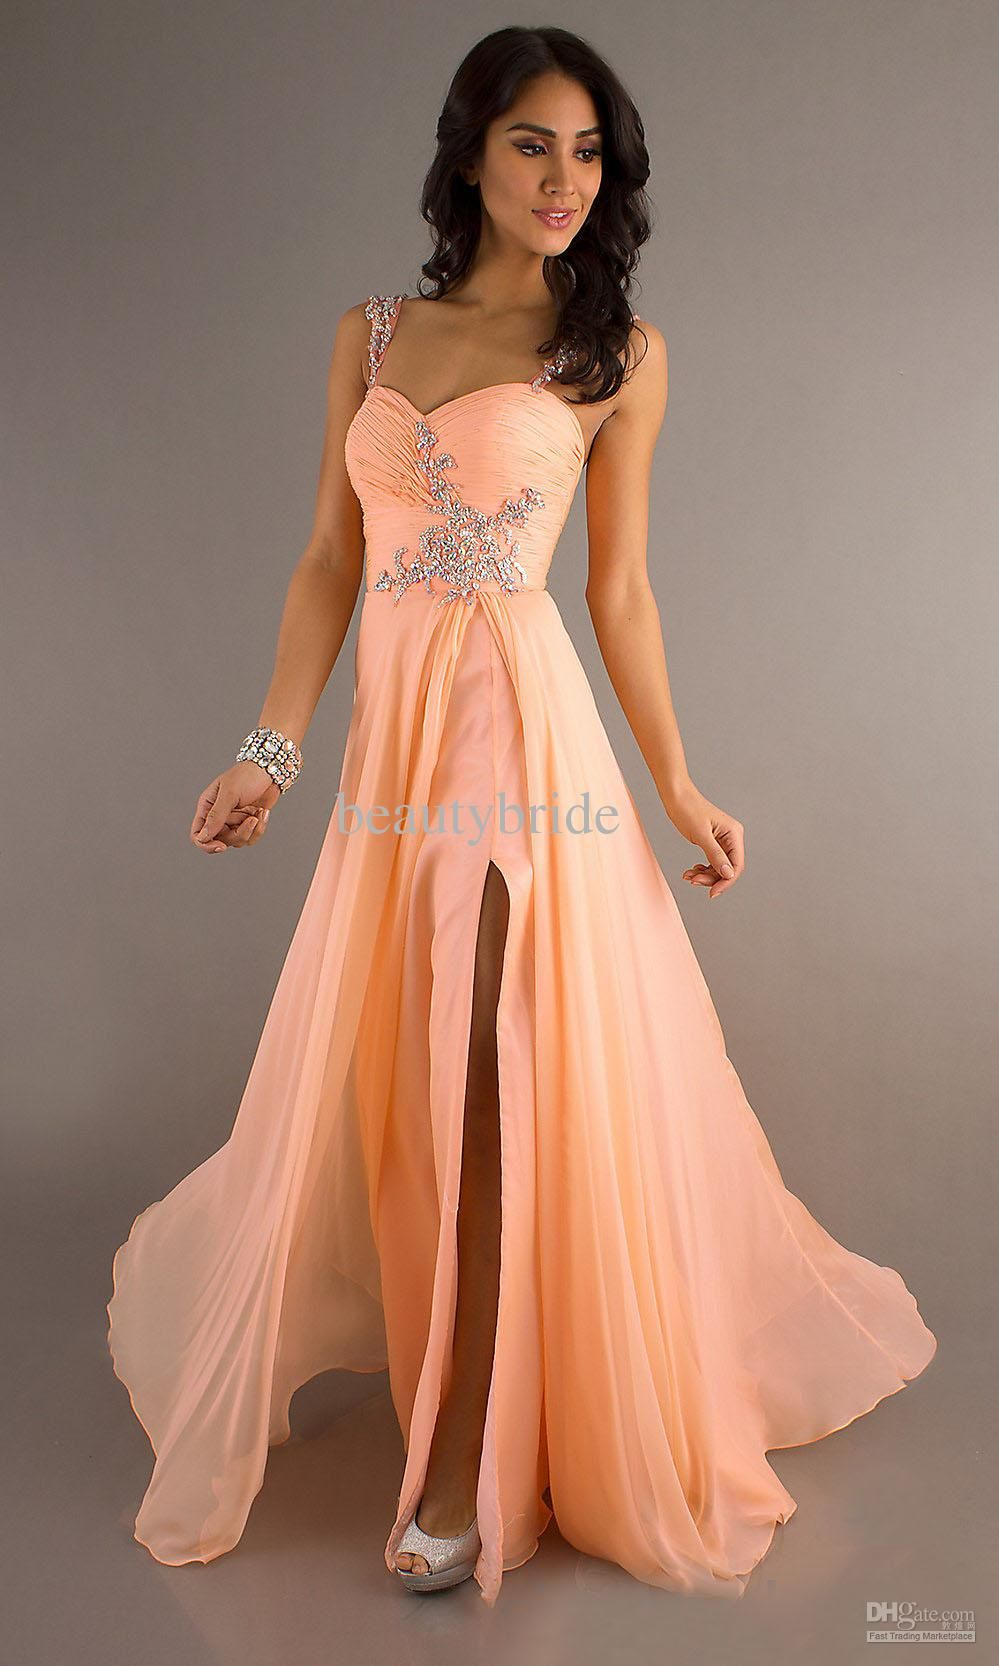 great color | wedding | Pinterest | Colors, Dresses. and Searches